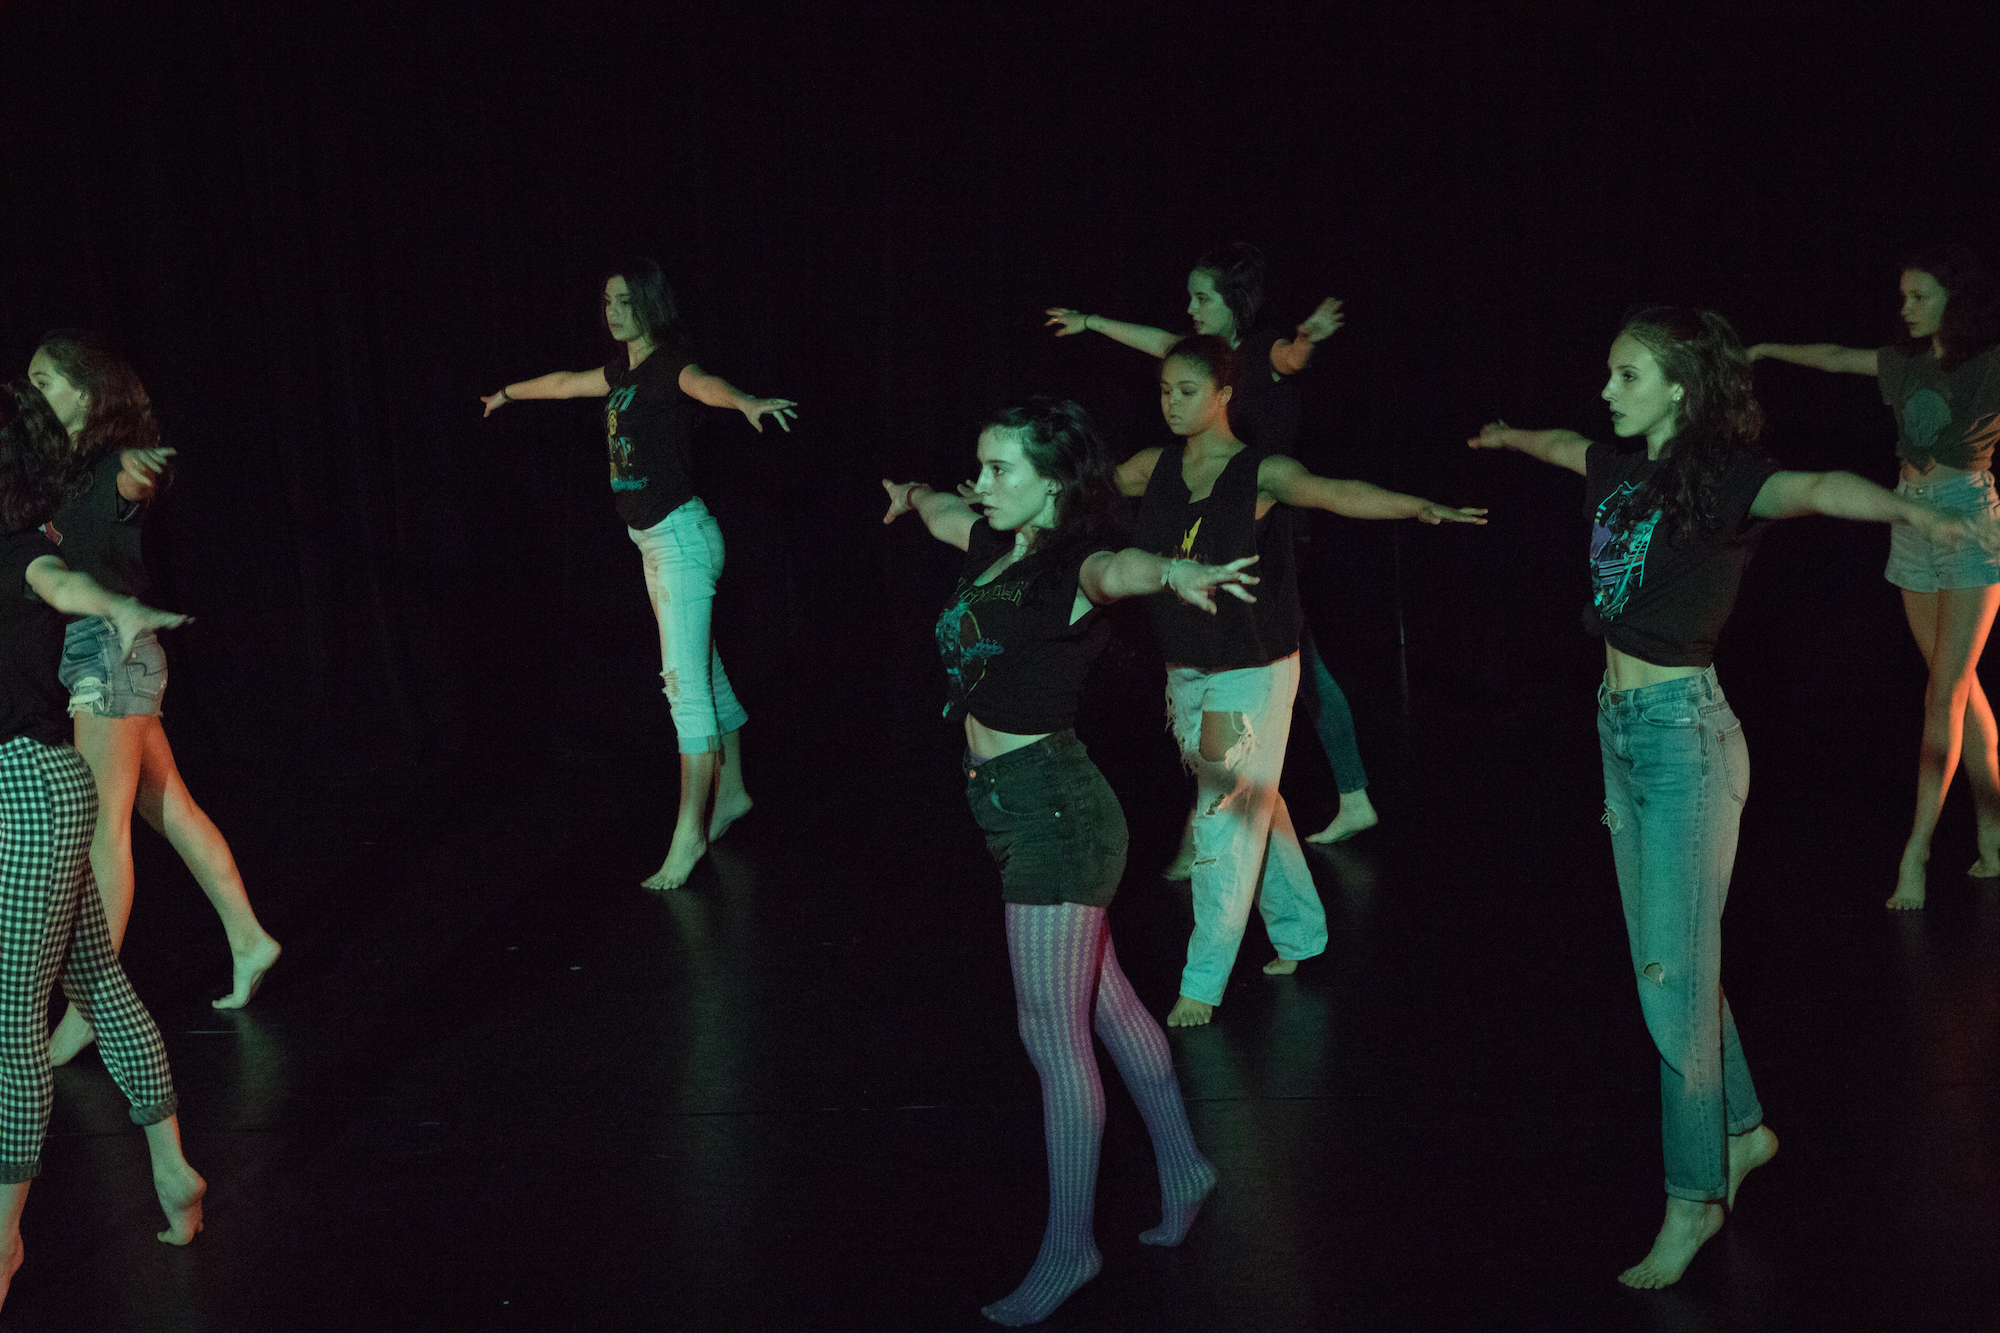 Stella (third from left) in e.g.dance performance in June 2018. Photo by Ebbe Sweet.